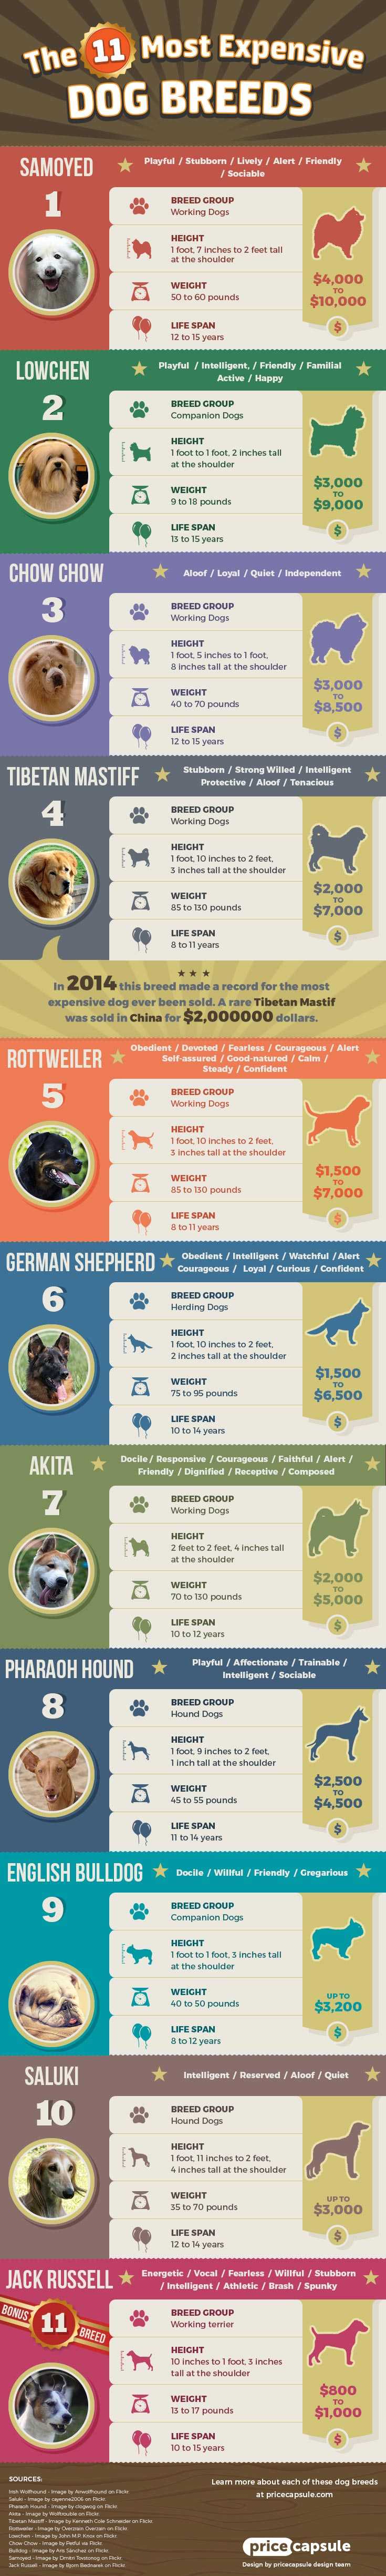 Best Dog Breeds For Air Travel